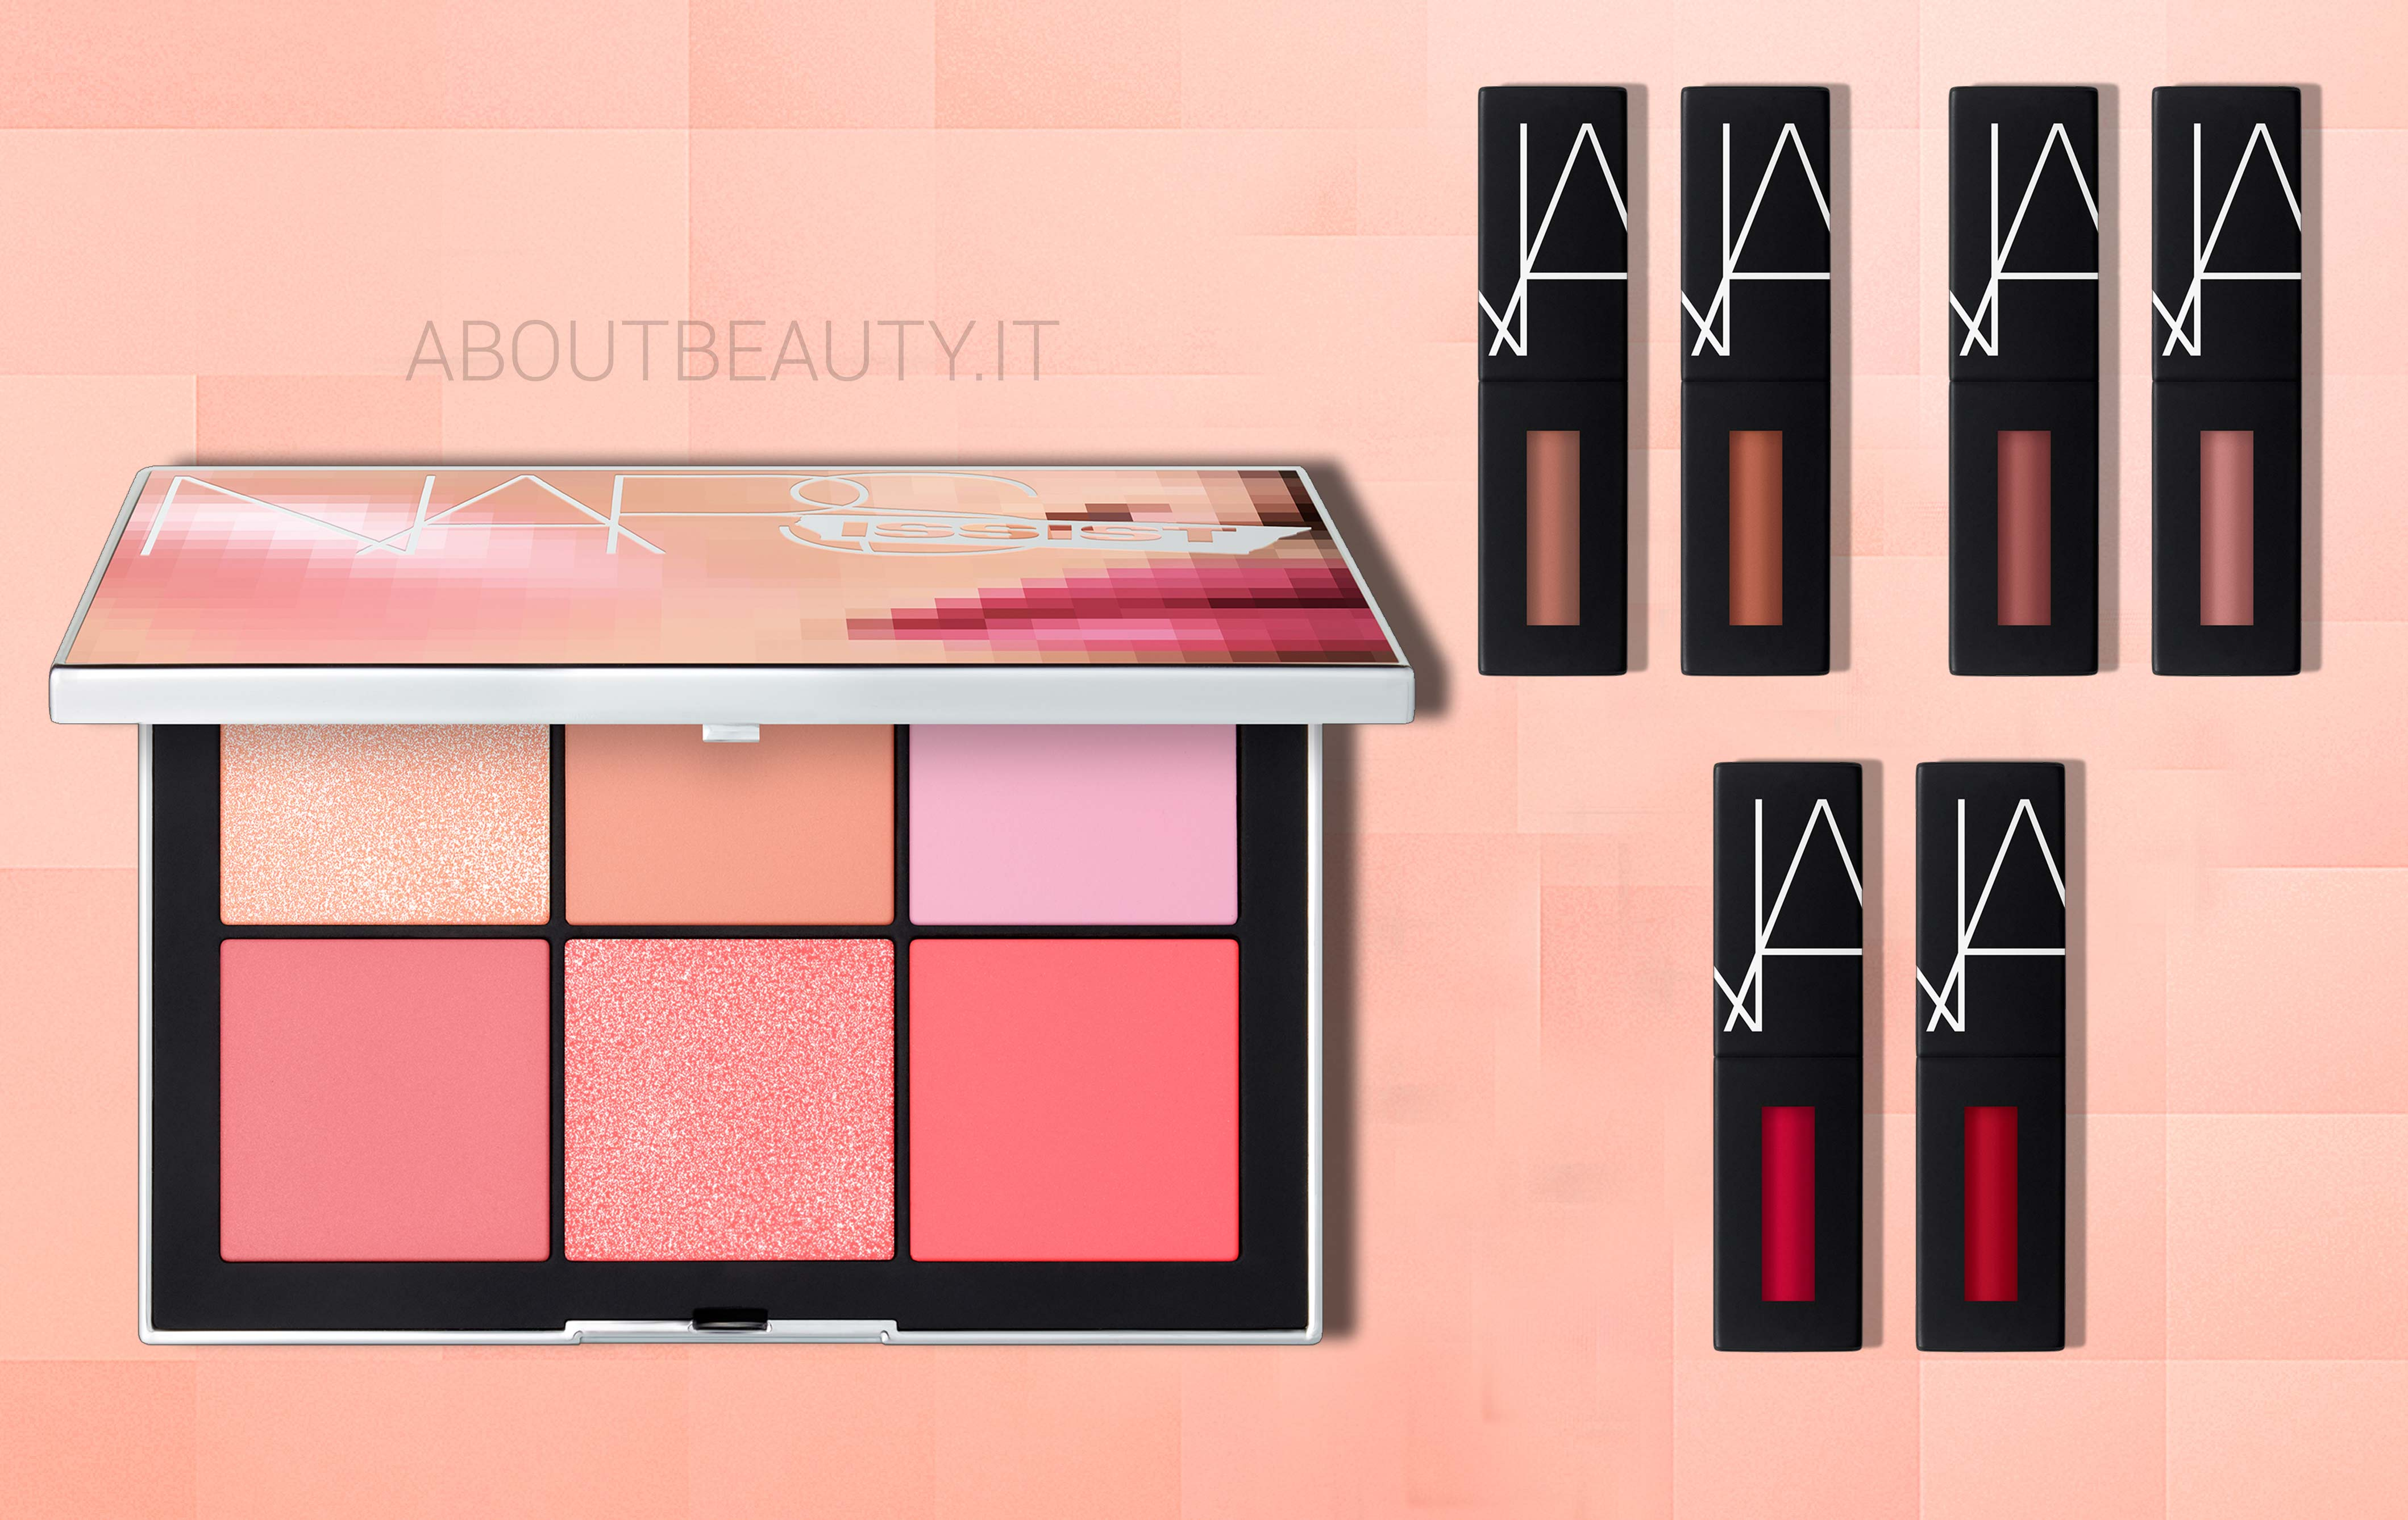 Novità Nars: NARSissist Wanted Cheek Palette e NARSissist Wanted Power Pack Lip Kits - Review, recensione, info, prezzo, dove acquistare, data uscita, swatch, INCI